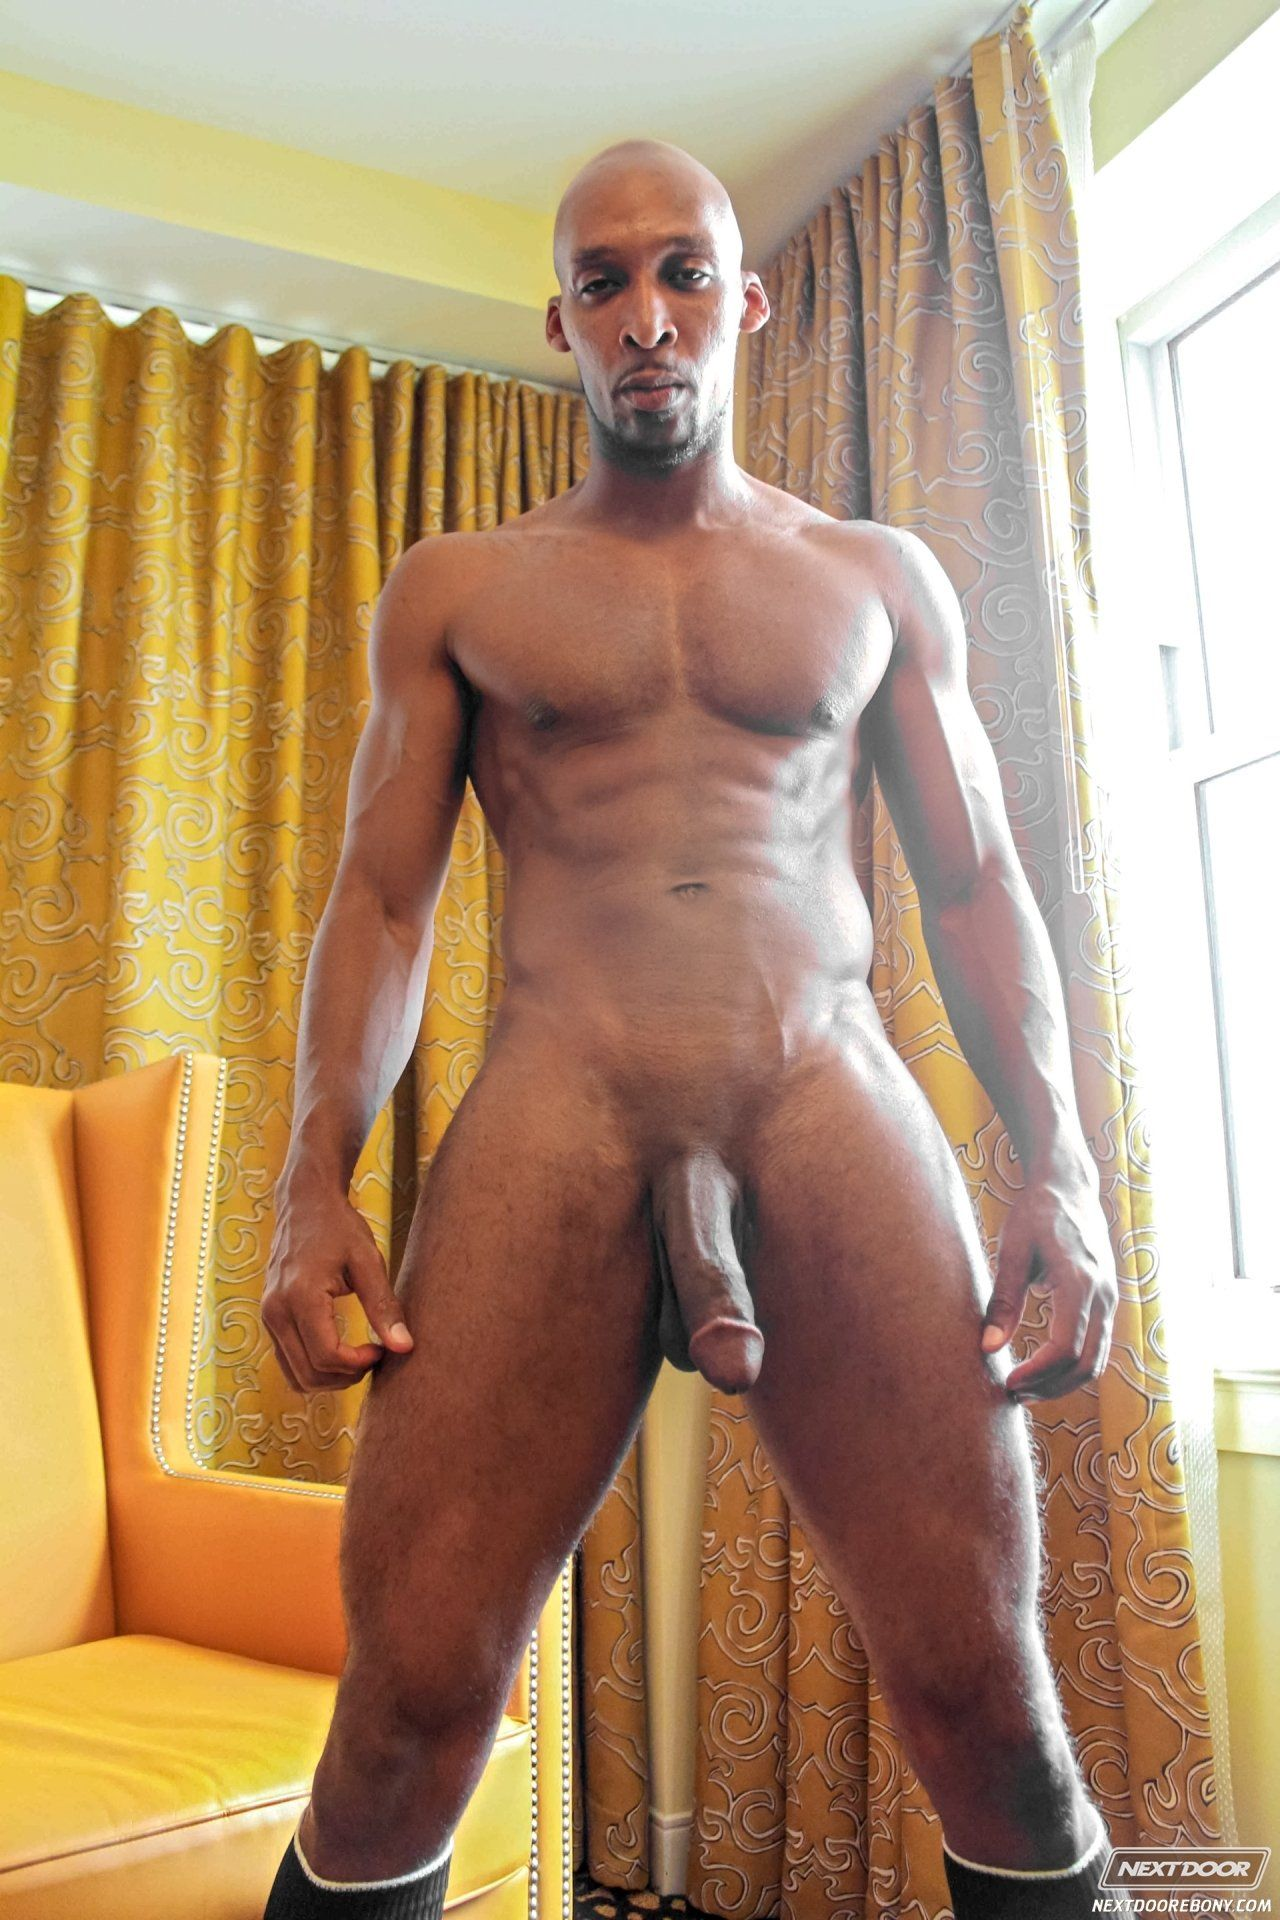 Africa Porno Gay idea with mens penis naked gay black fat apologise, but